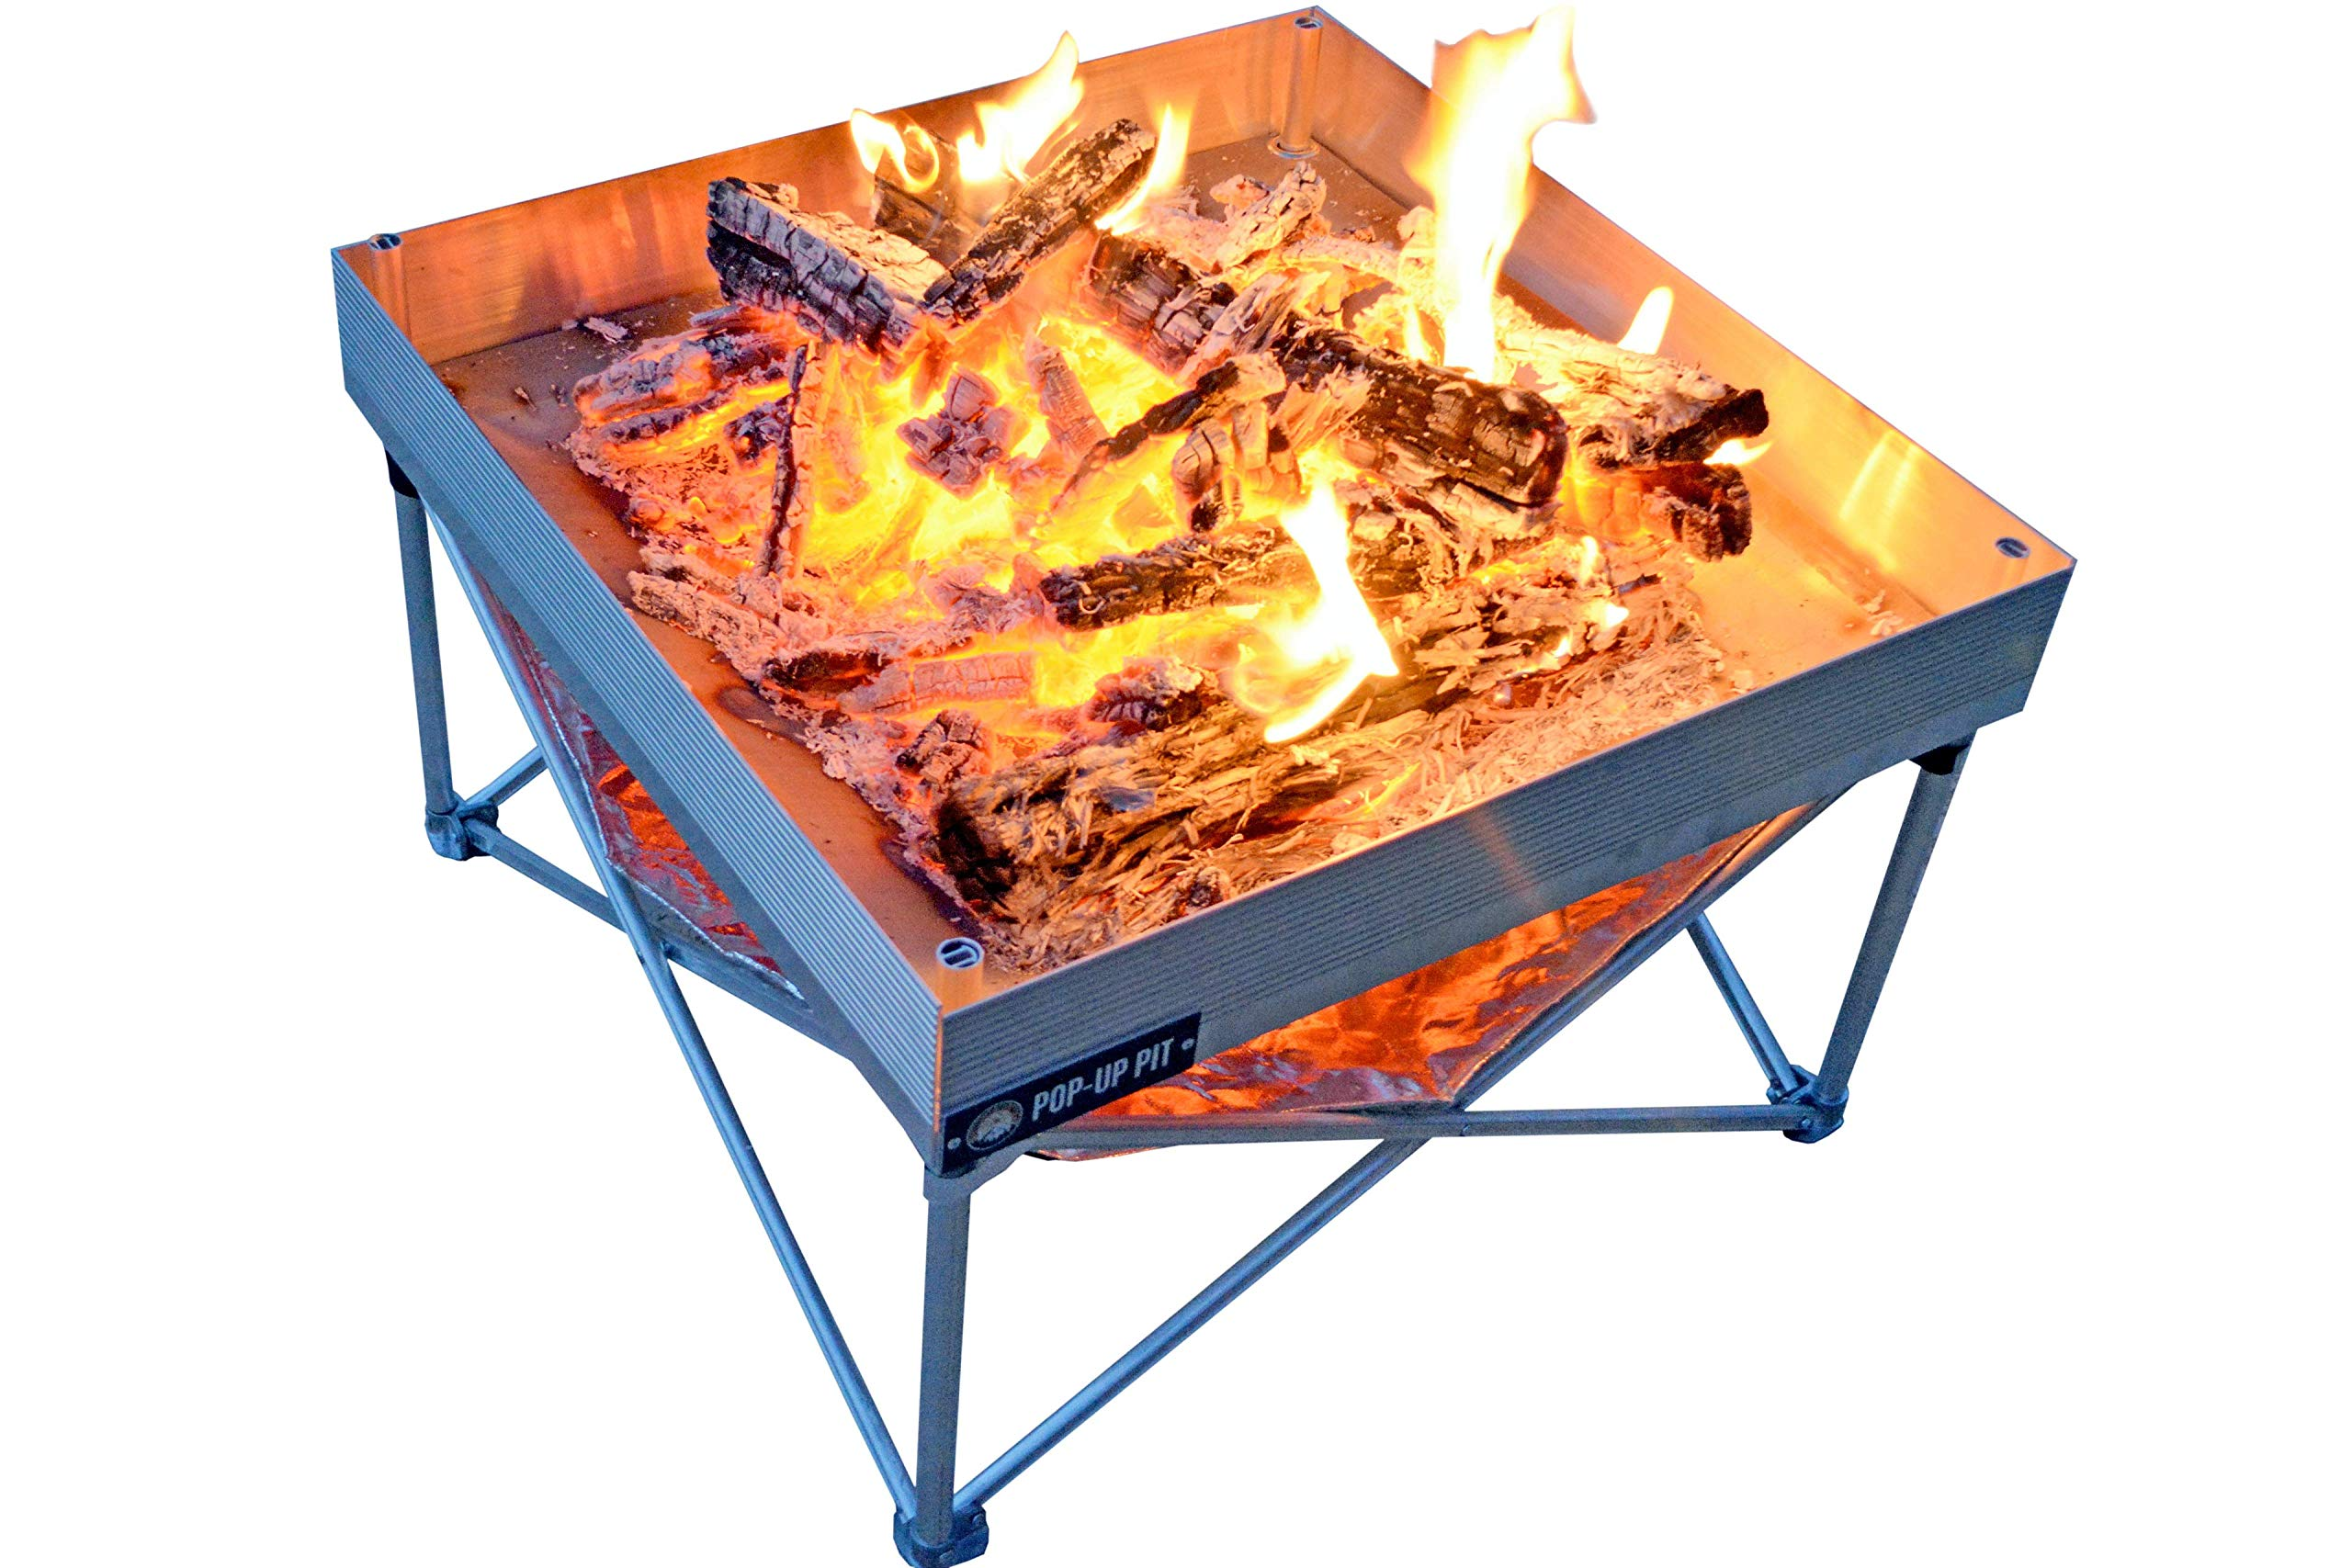 Campfire Defender Protect Preserve Pop-Up Fire Pit | Portable and Lightweight | Fullsize 24 Inch | Never Rust FirePit | Included Heat Shield for Leave No Trace Fires (Pop-Up Fire Pit + Heat Shield) by Campfire Defender Protect Preserve